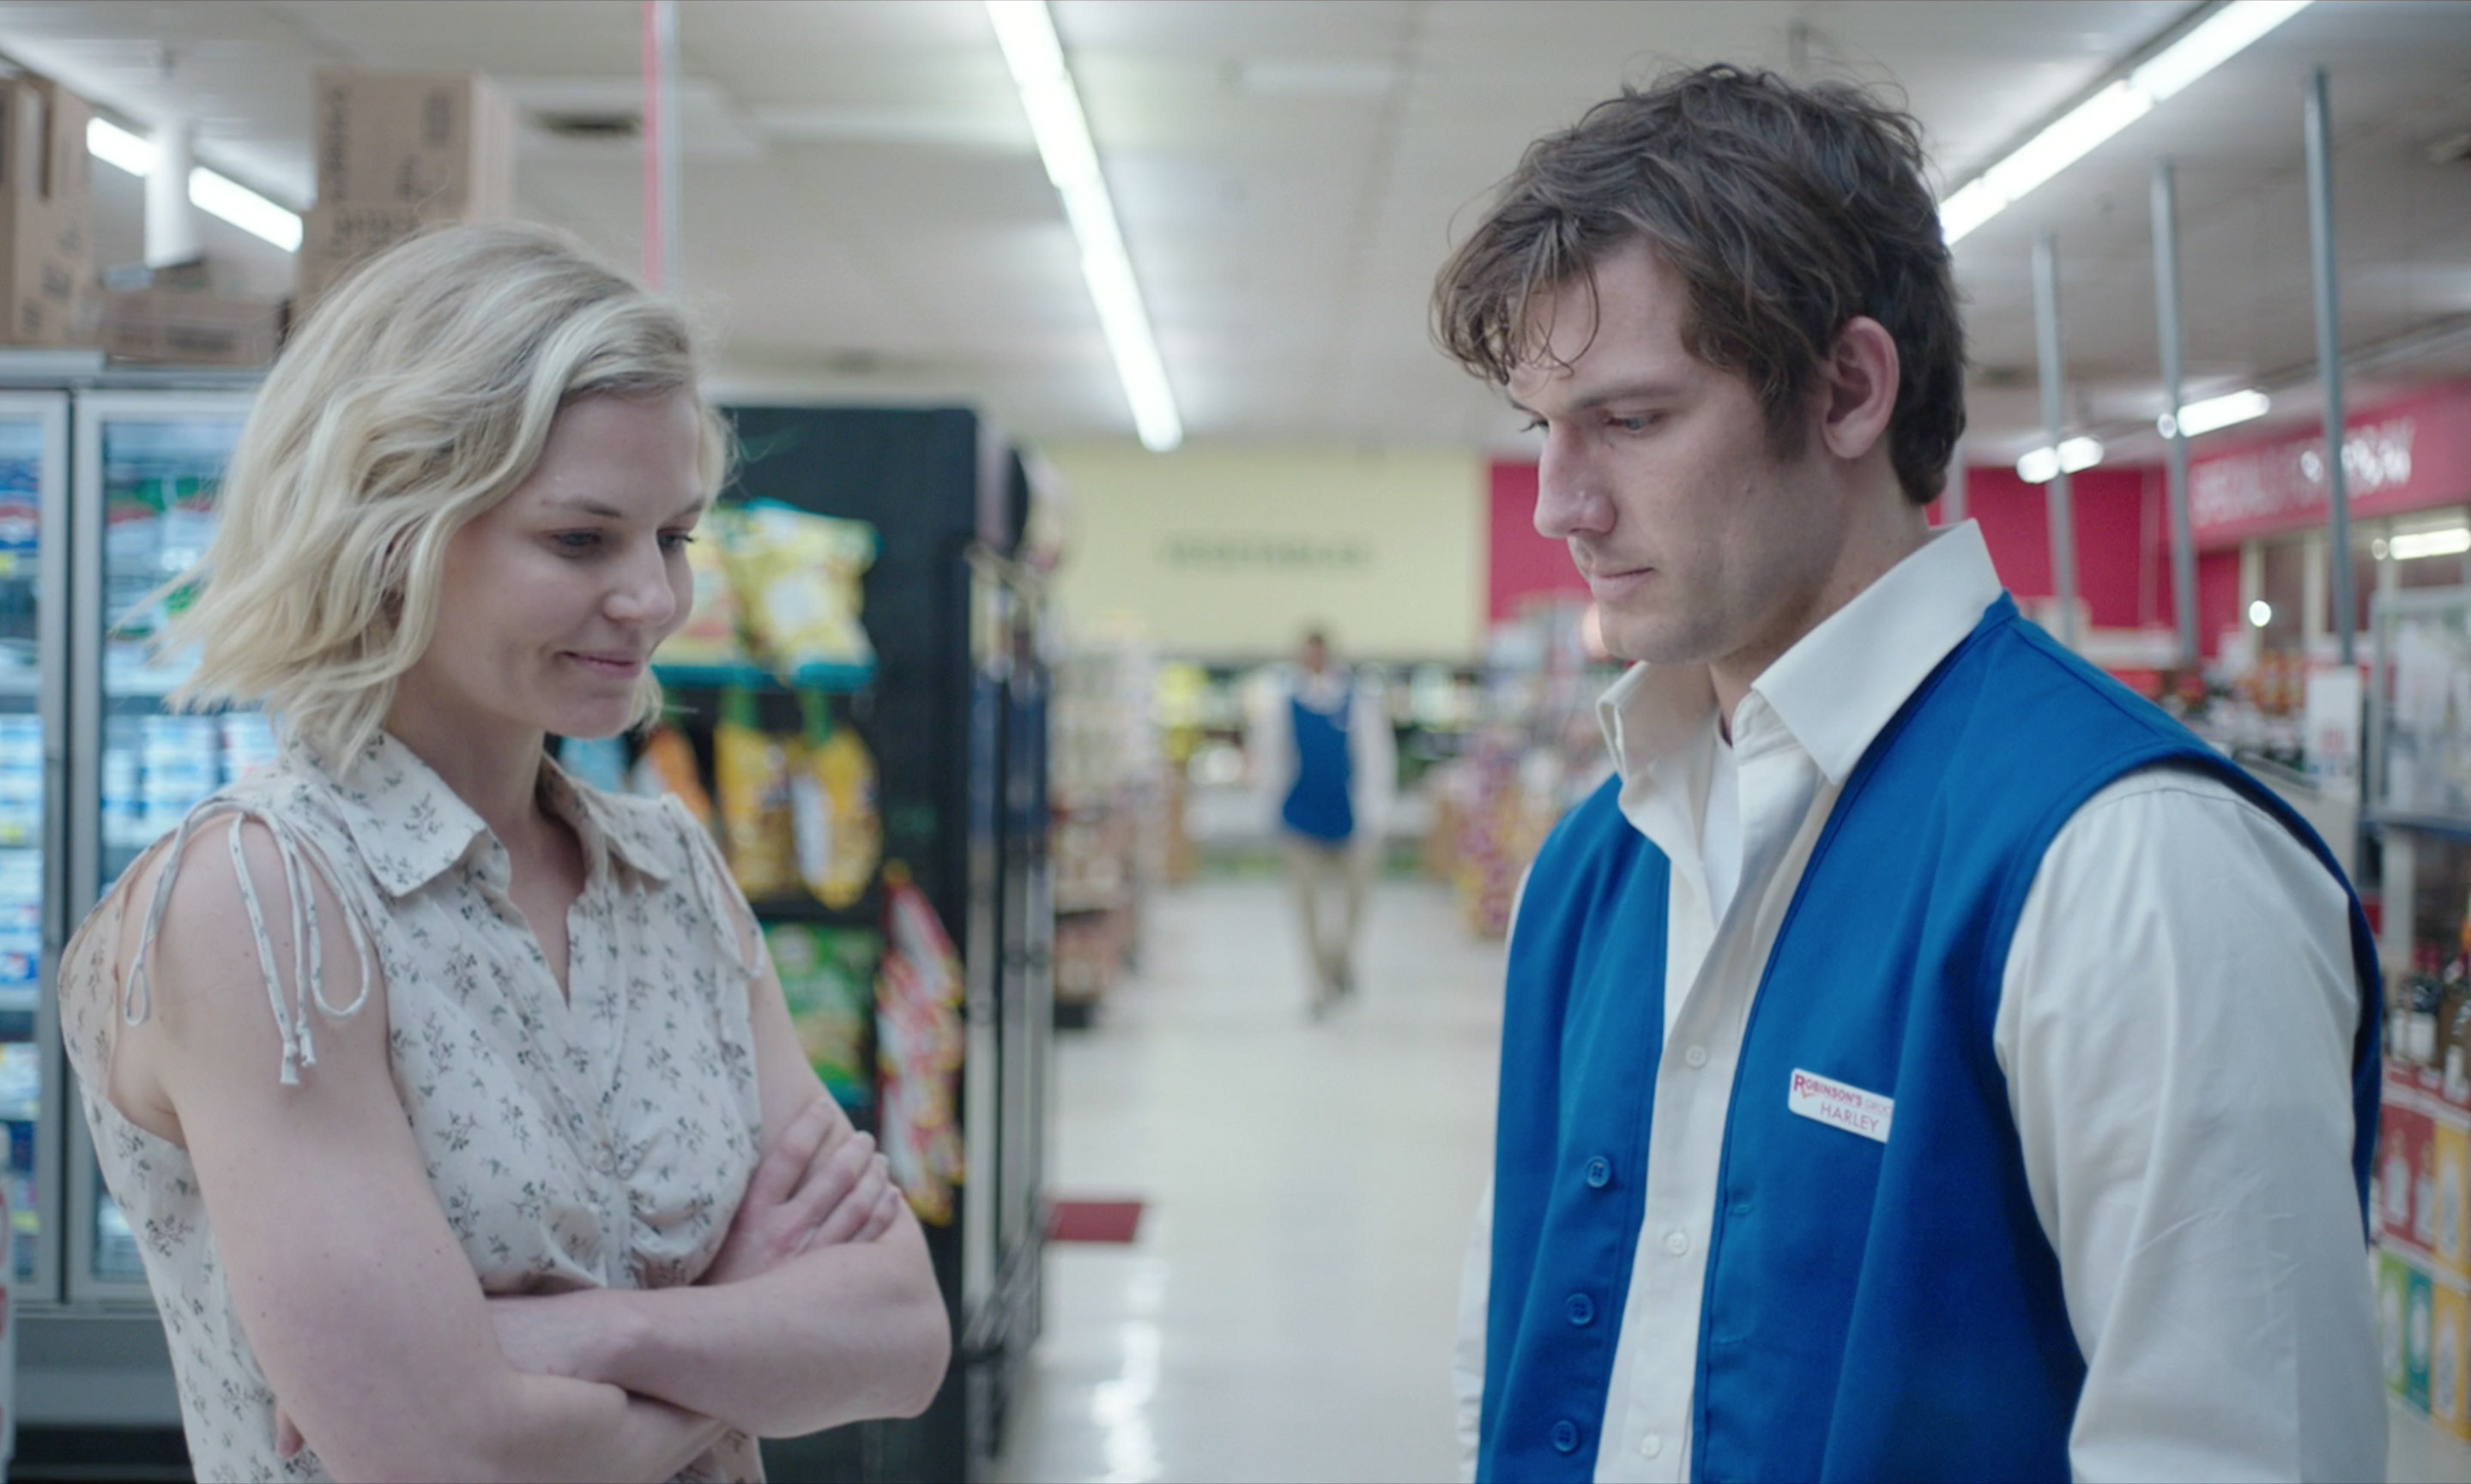 Alex Pettyfer stars in his directorial debut film BACK ROADS opposite Jennifer Morrison. Distributed by Samuel Goldwyn Films